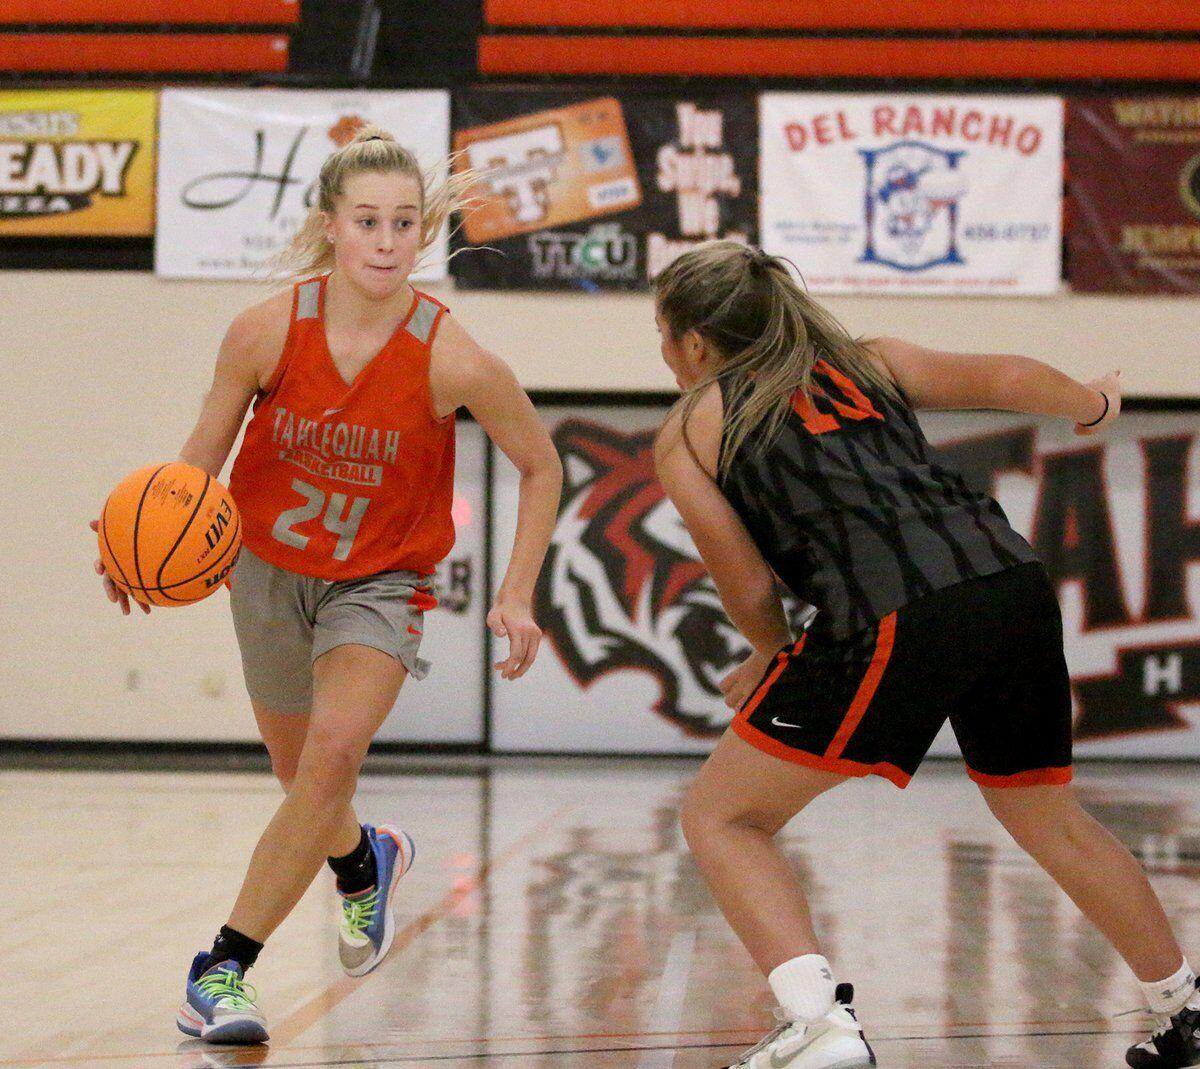 HIGH EXPECTATIONS: Lady Tigers return strong nucleus